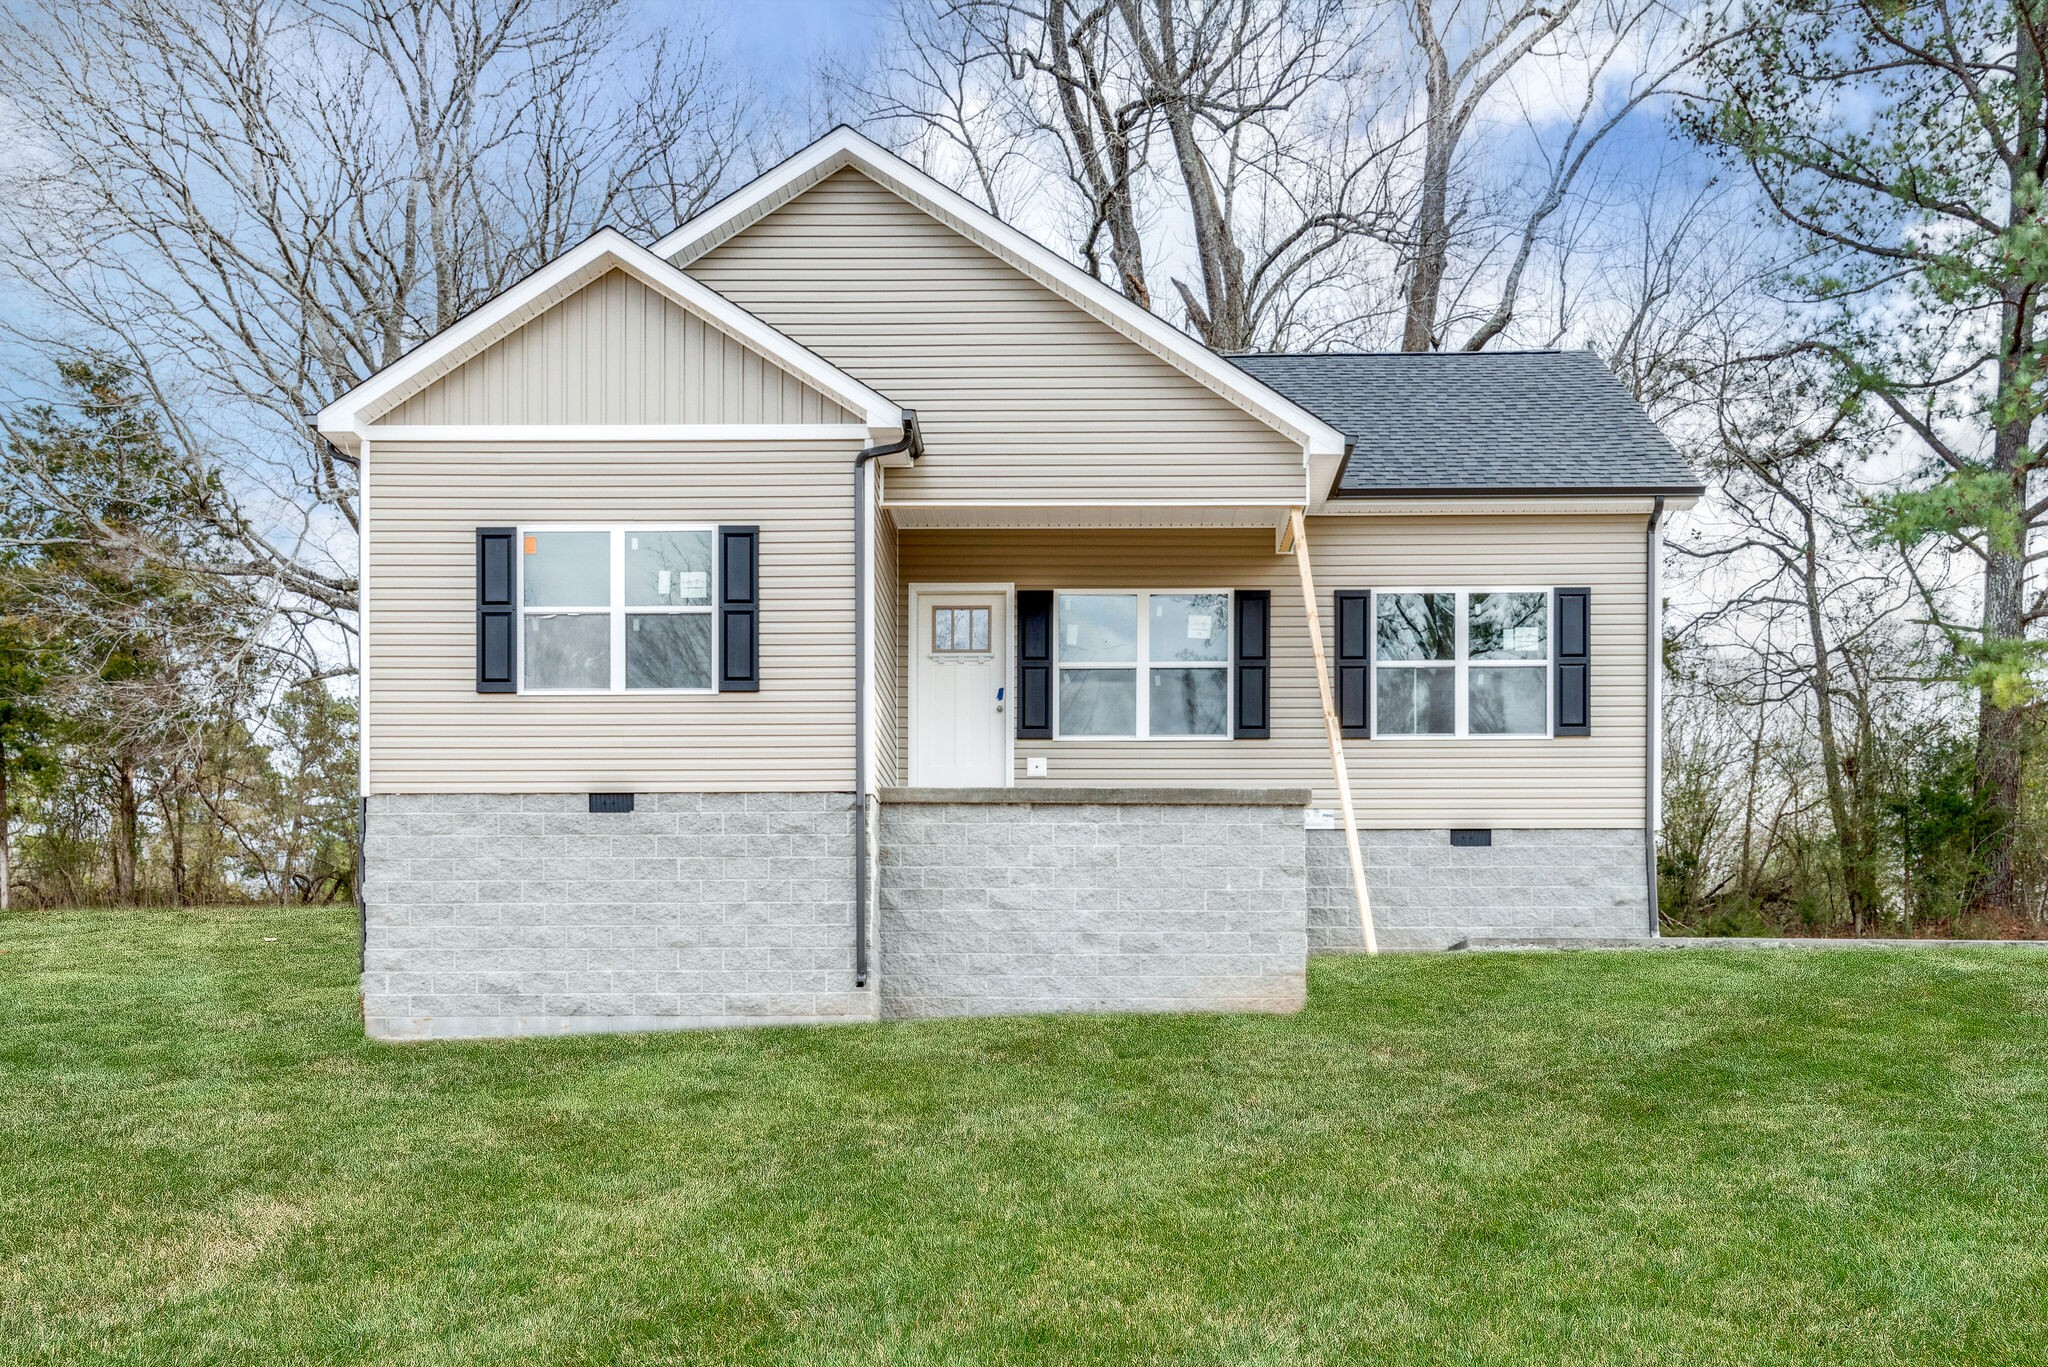 BRAND NEW HOME!!! ***HARDLY ANY INVENTORY IN THIS PRICE RANGE***Situated on 1.11 Acre+/- Lot*ALL ONE